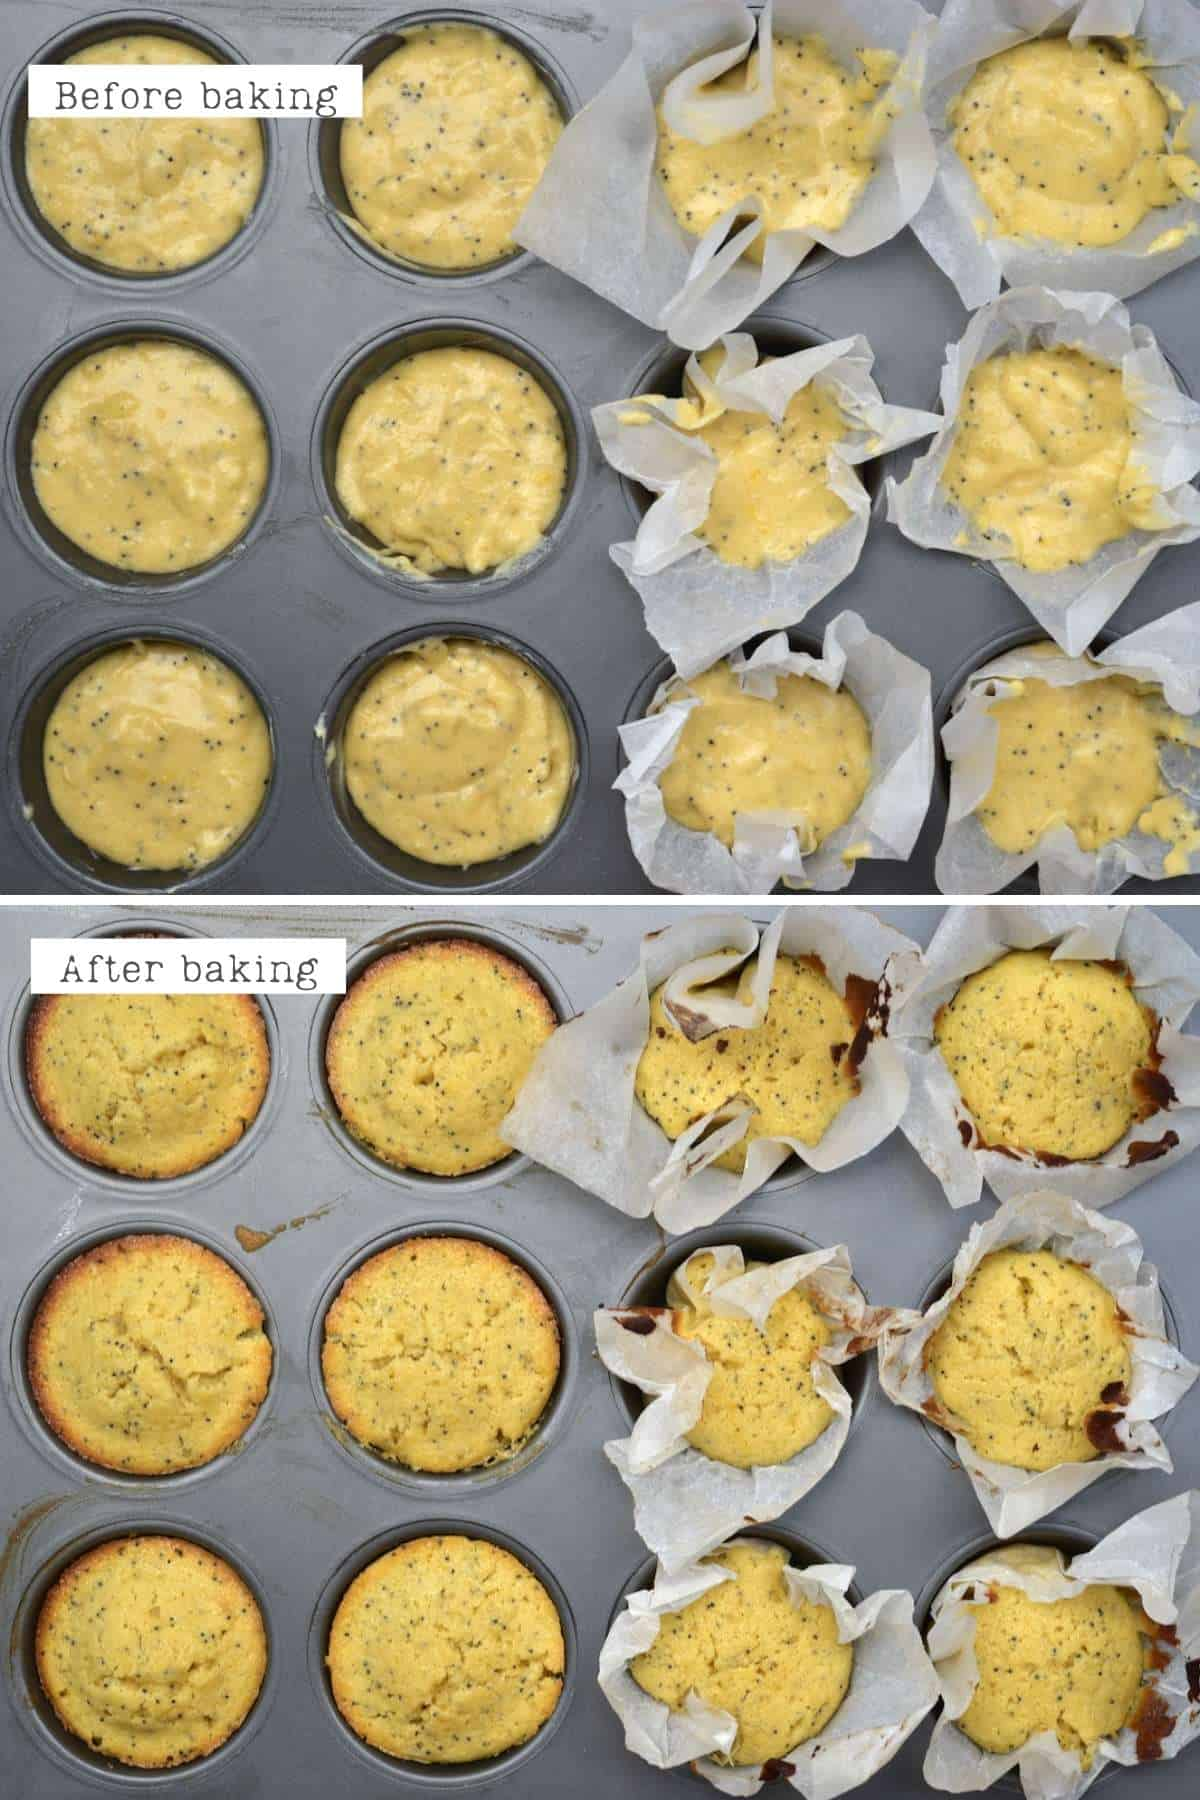 Before and after baking lemon cupcakes